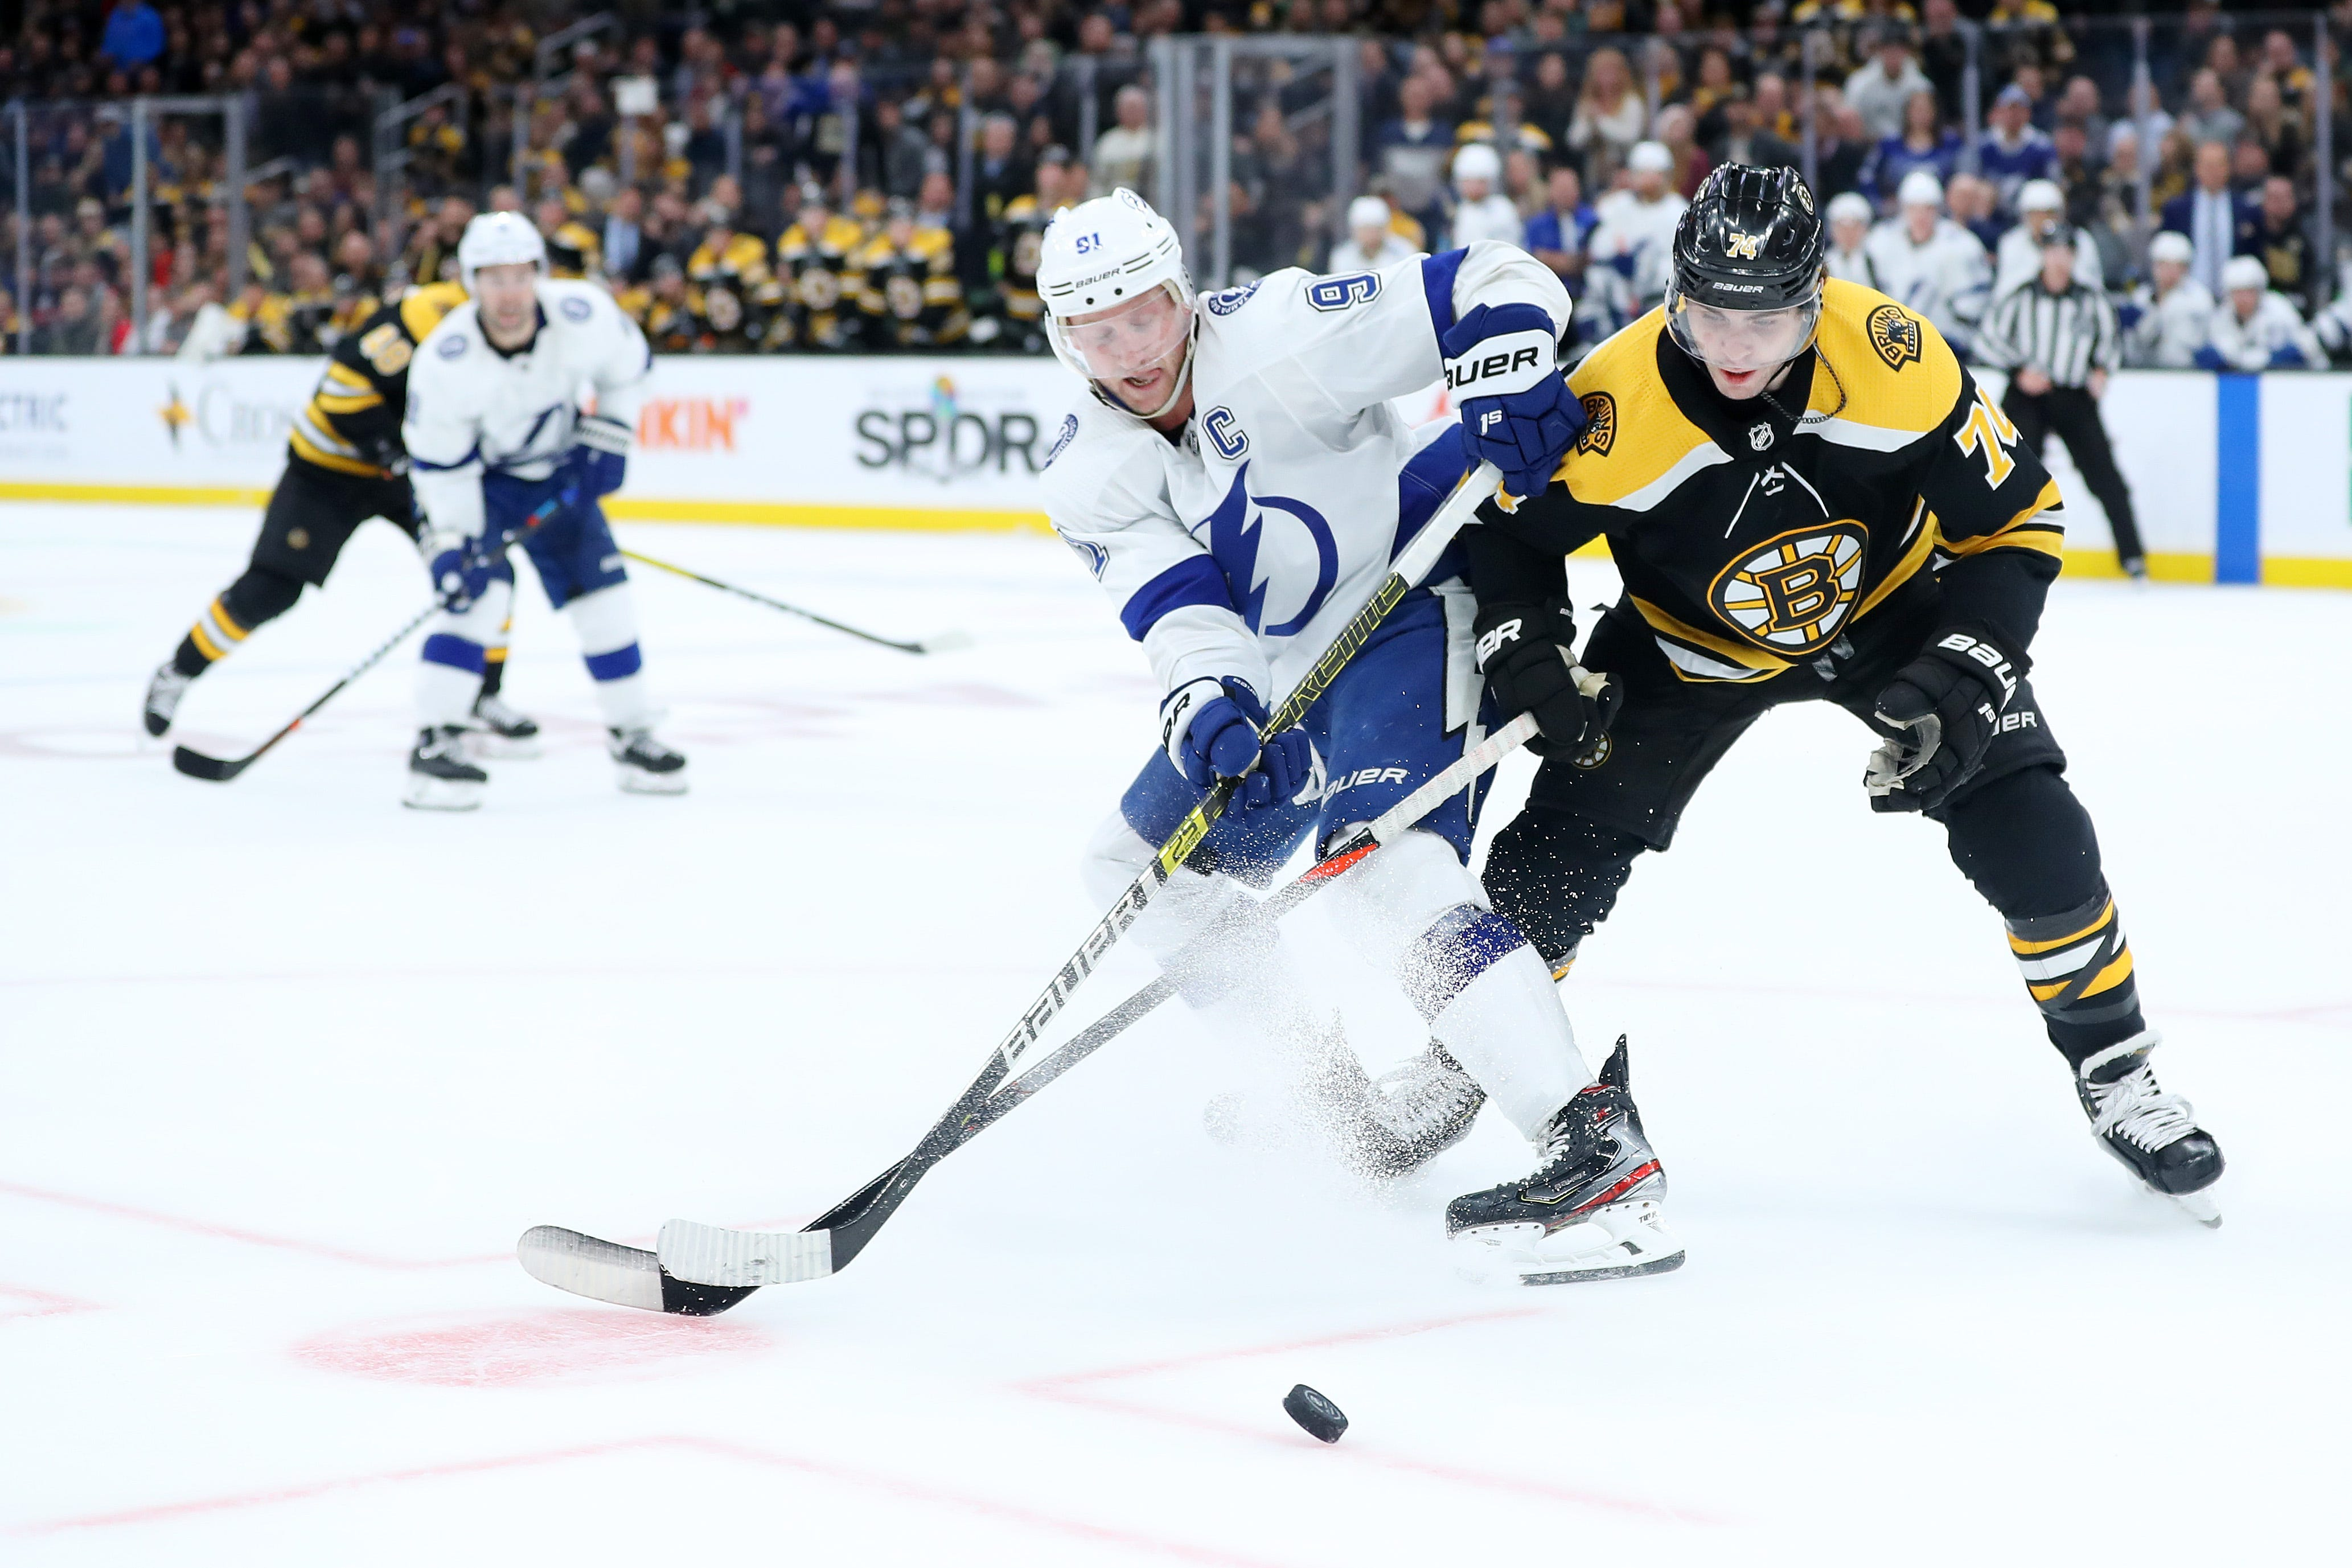 Bruins Loss To Lightning Exposed Their Faults